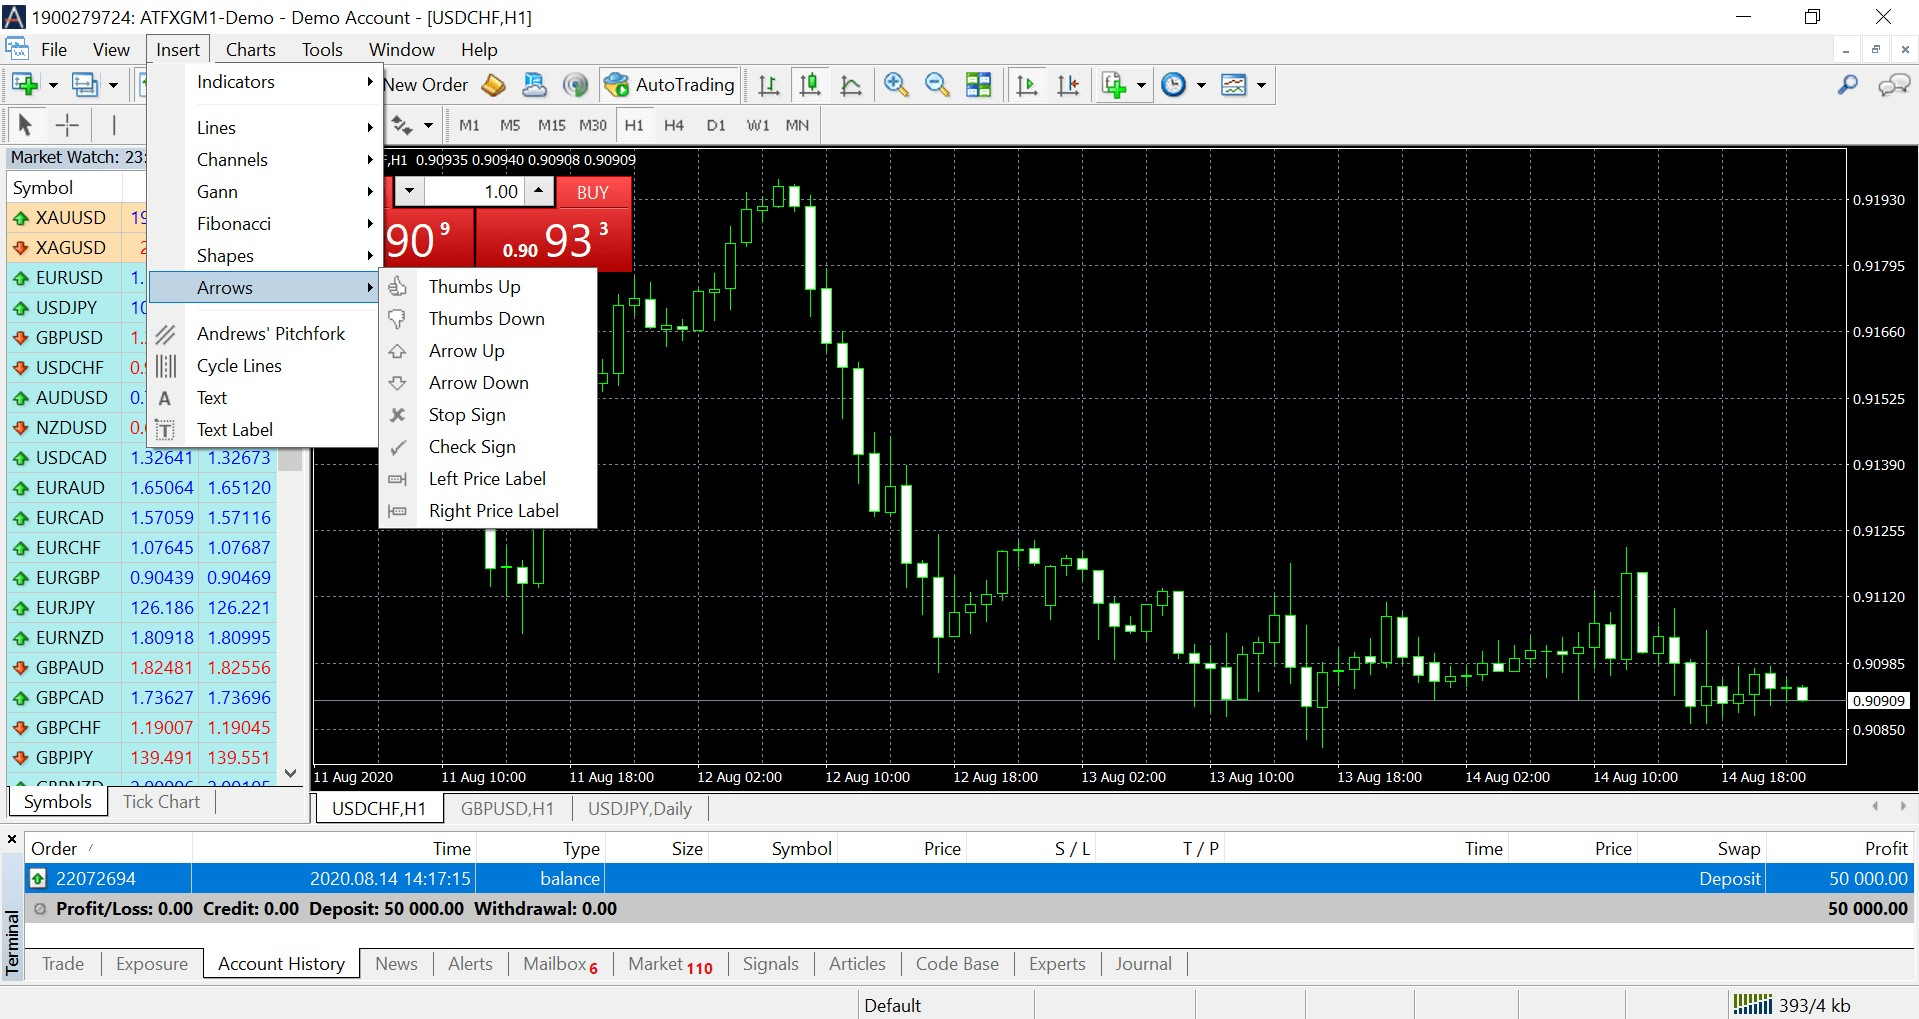 tradingplatforms-metatrader4-whatismt4-and-howtouseit-drawing-tools-image-